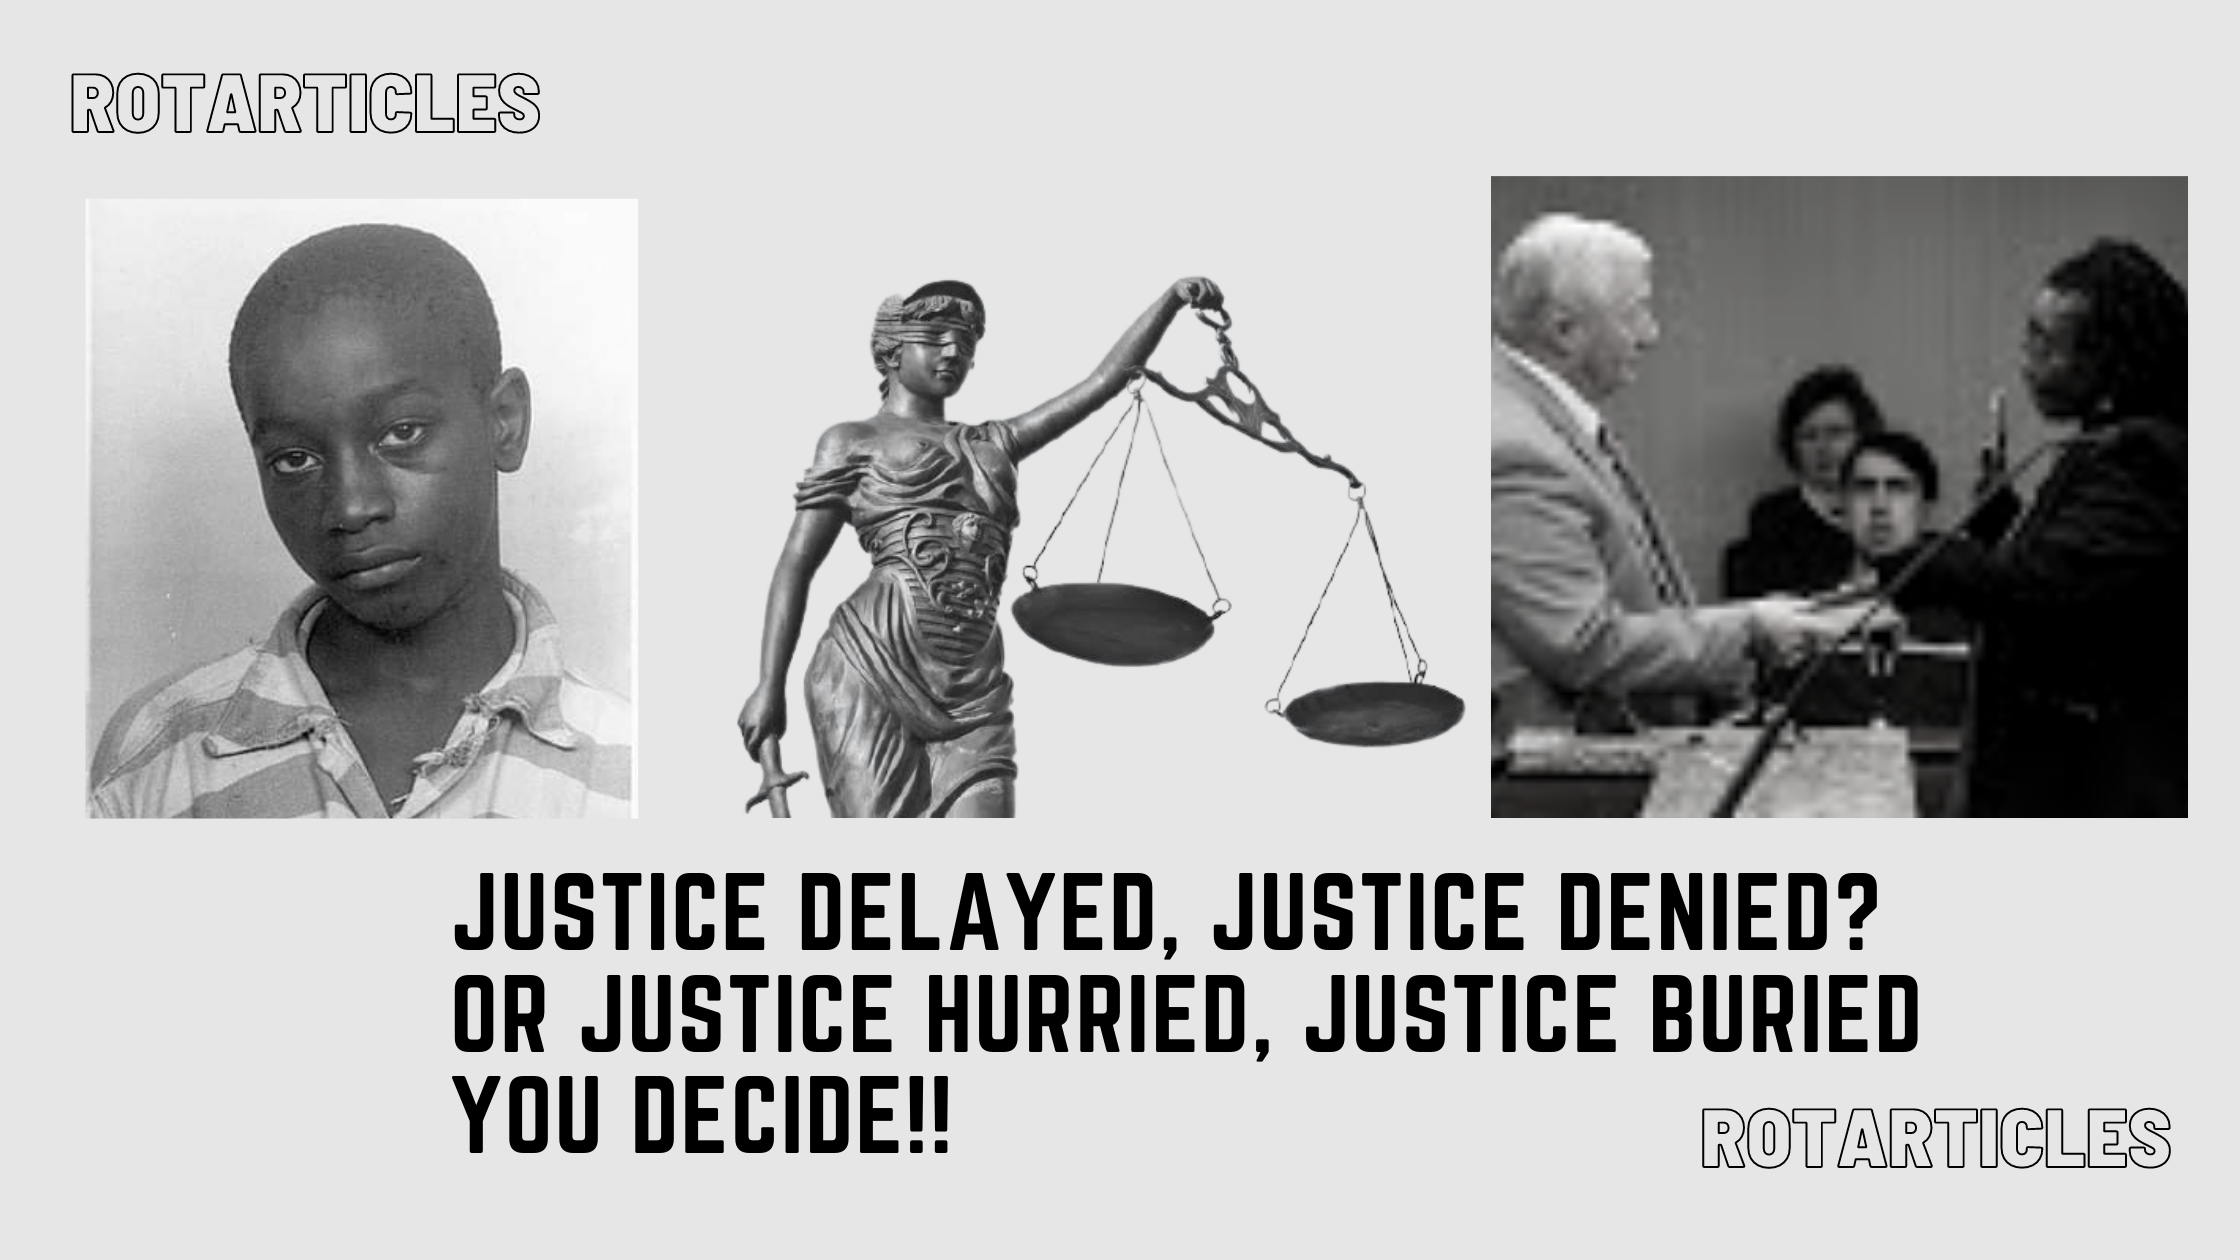 George Stinney Justice Delayed, Justice Denied You decide!